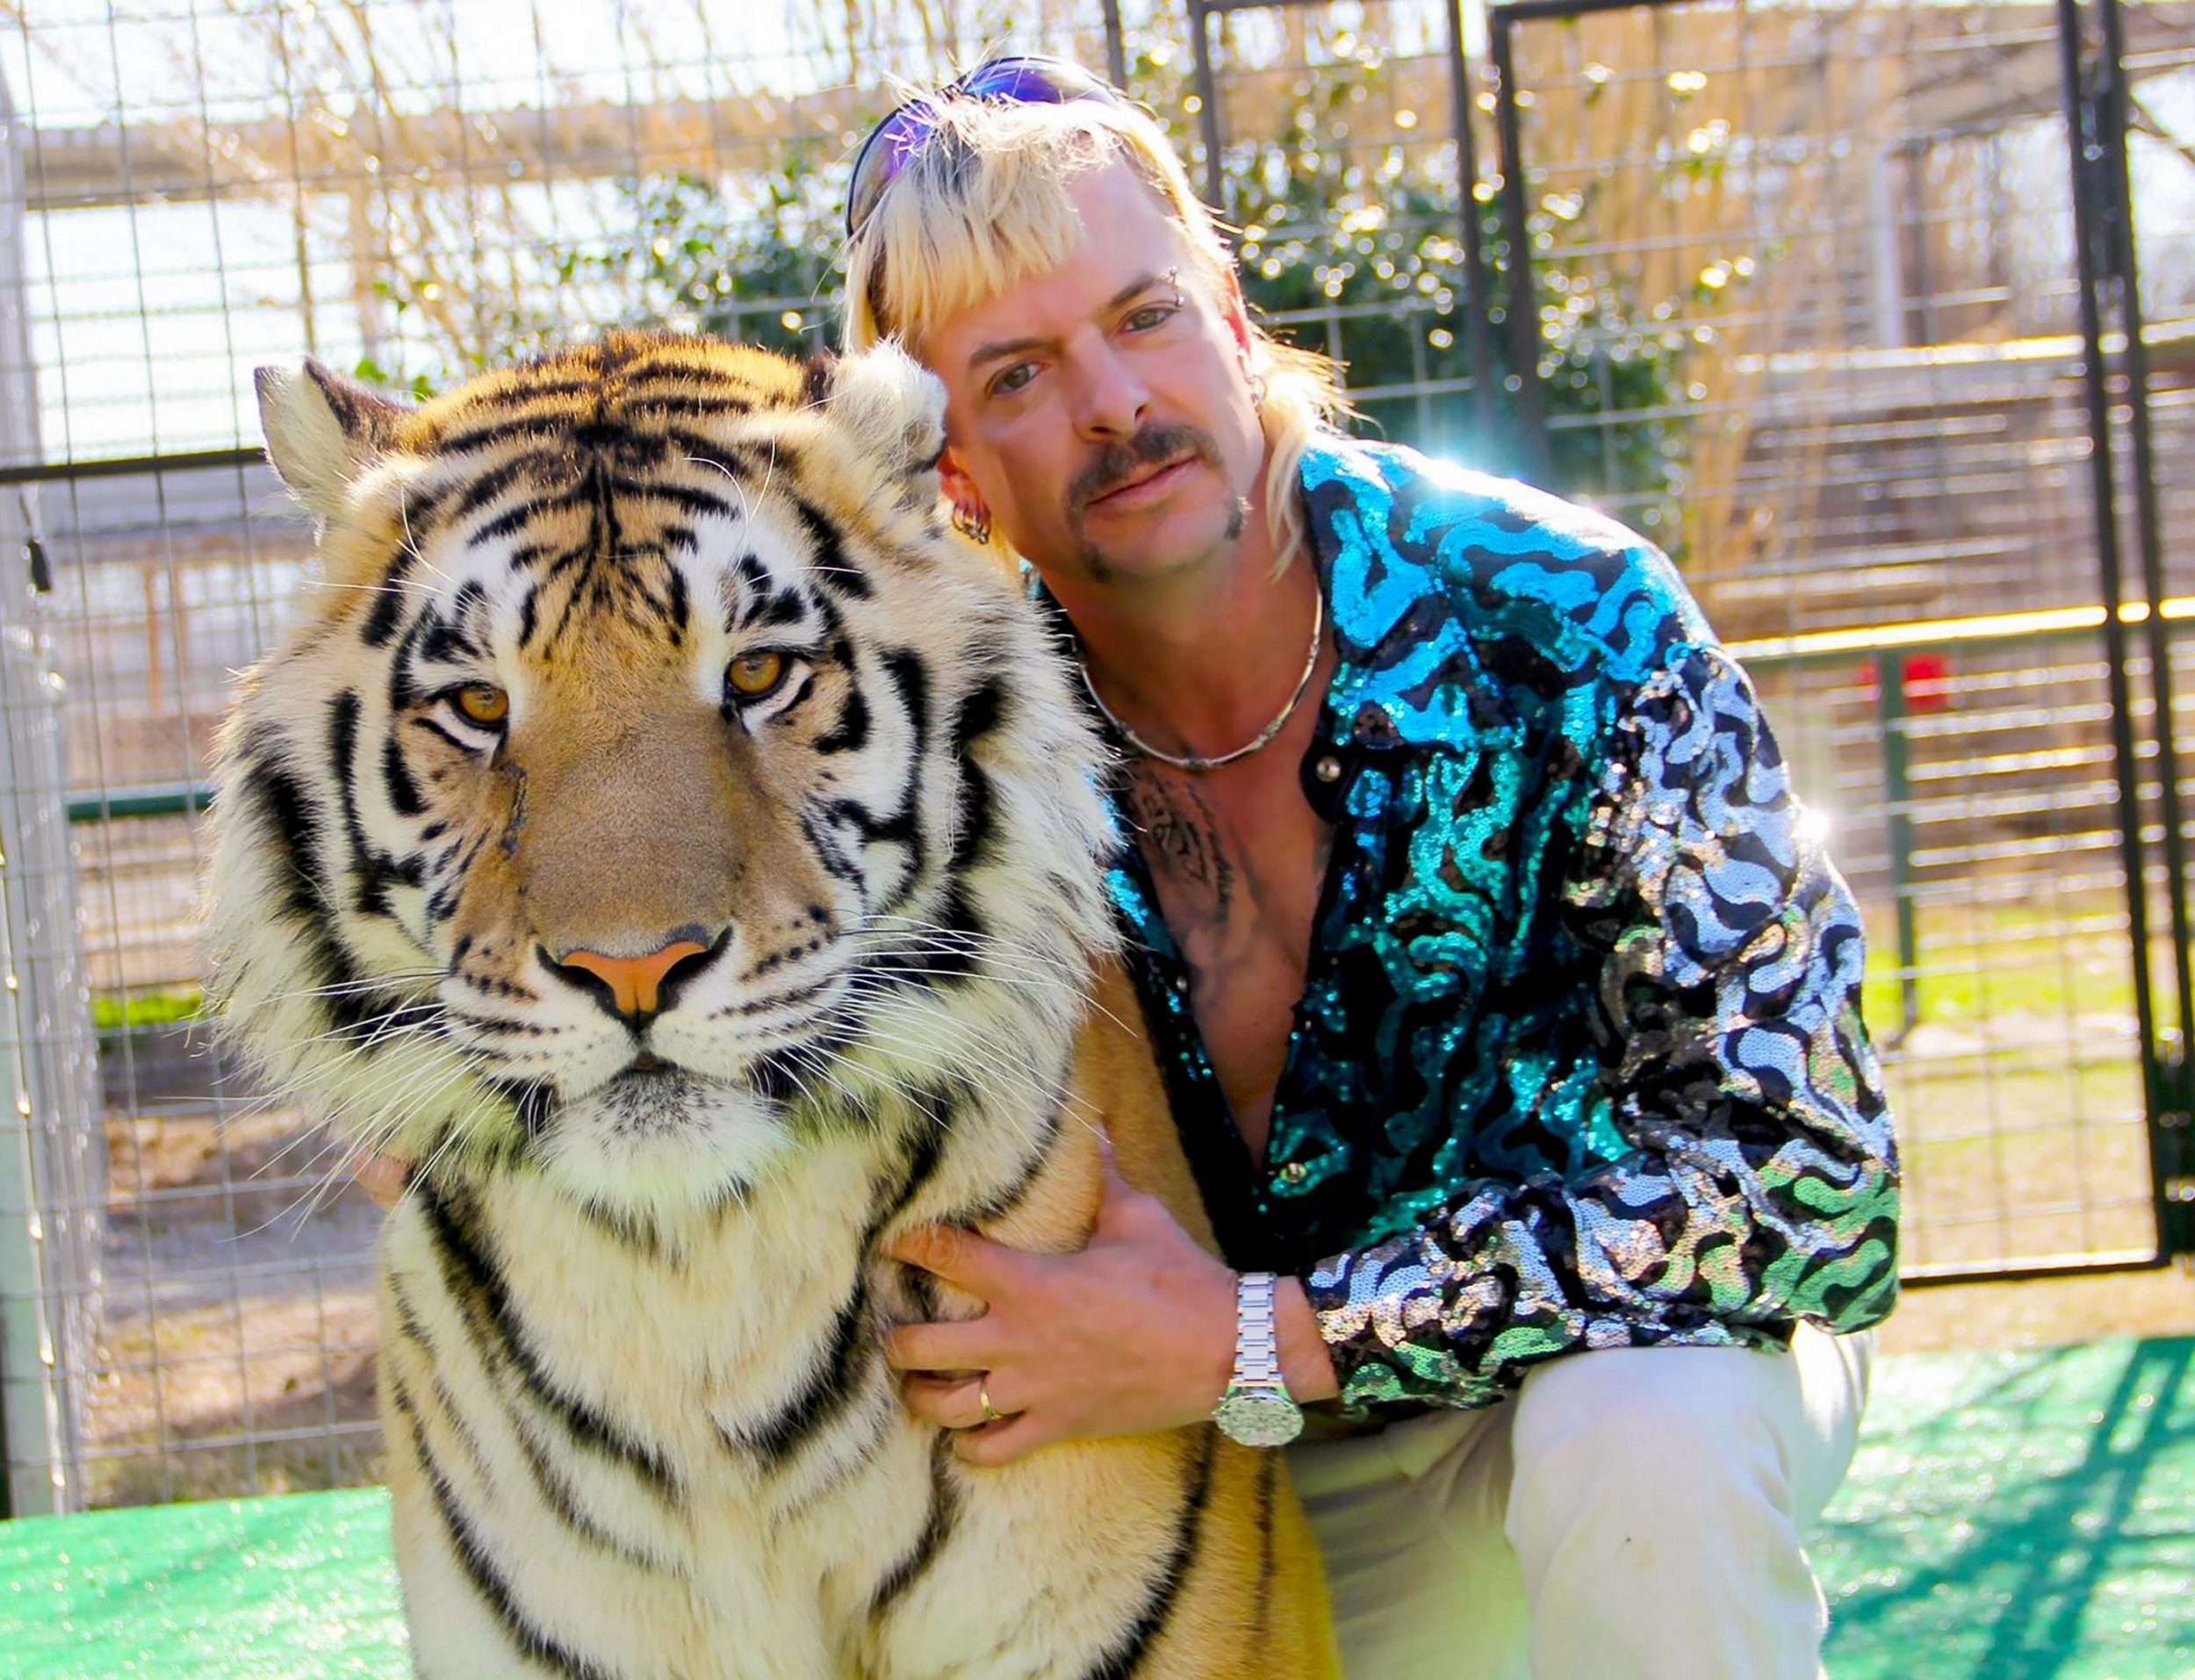 Tiger King's Dillon Passage shoots down claims Joe Exotic is scared of tigers: 'Would he get into their cages if he was?'